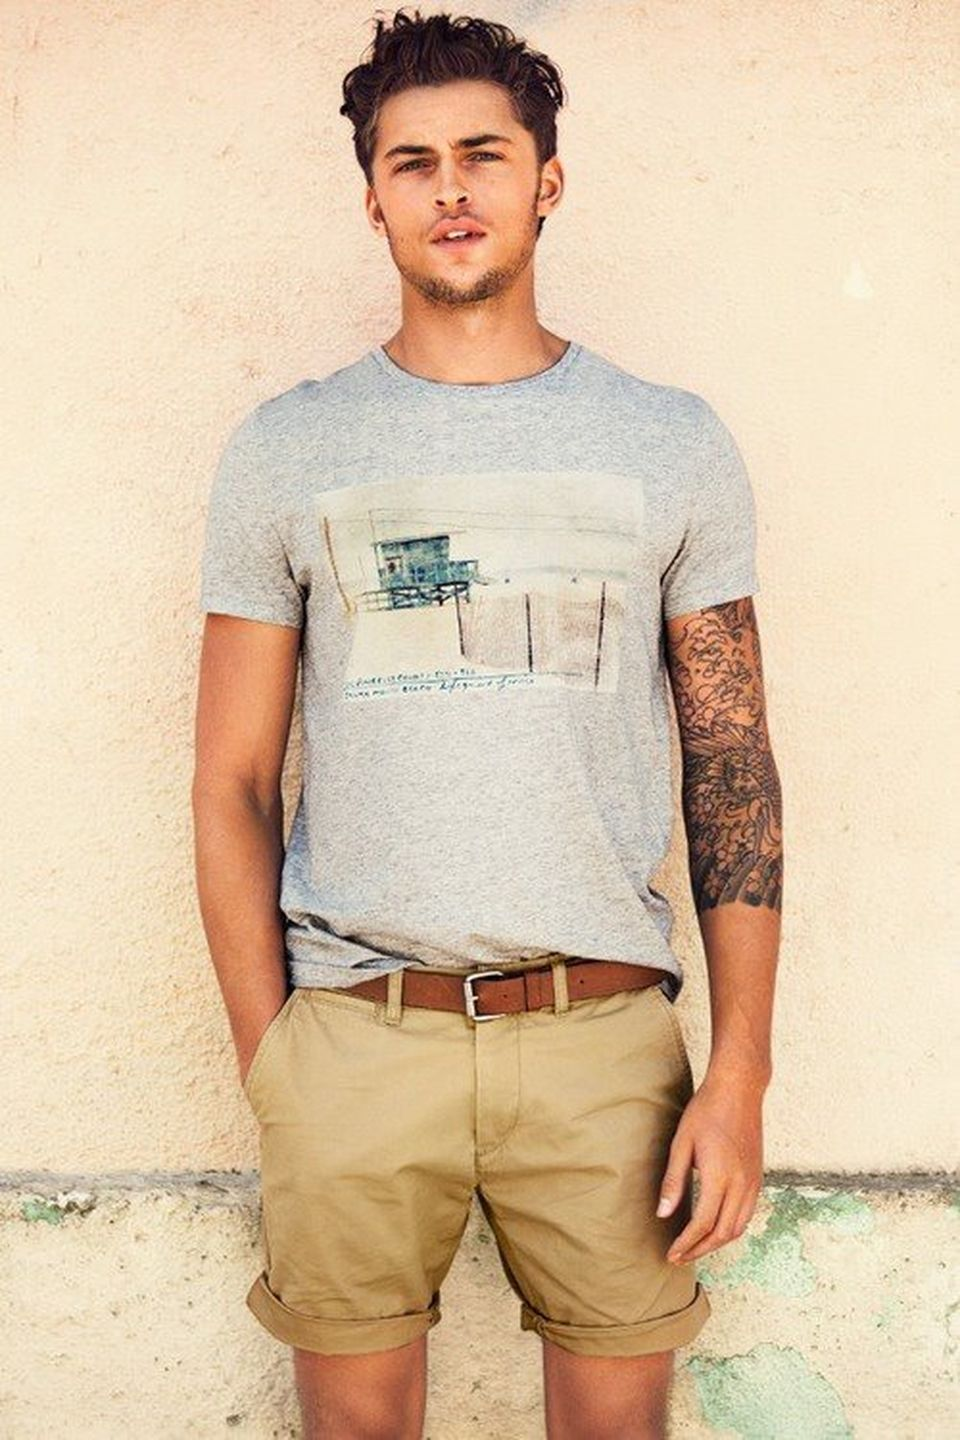 Casual Indie Mens Fashion Outfits Style 8: Casual Indie Mens Fashion Outfits Style 11